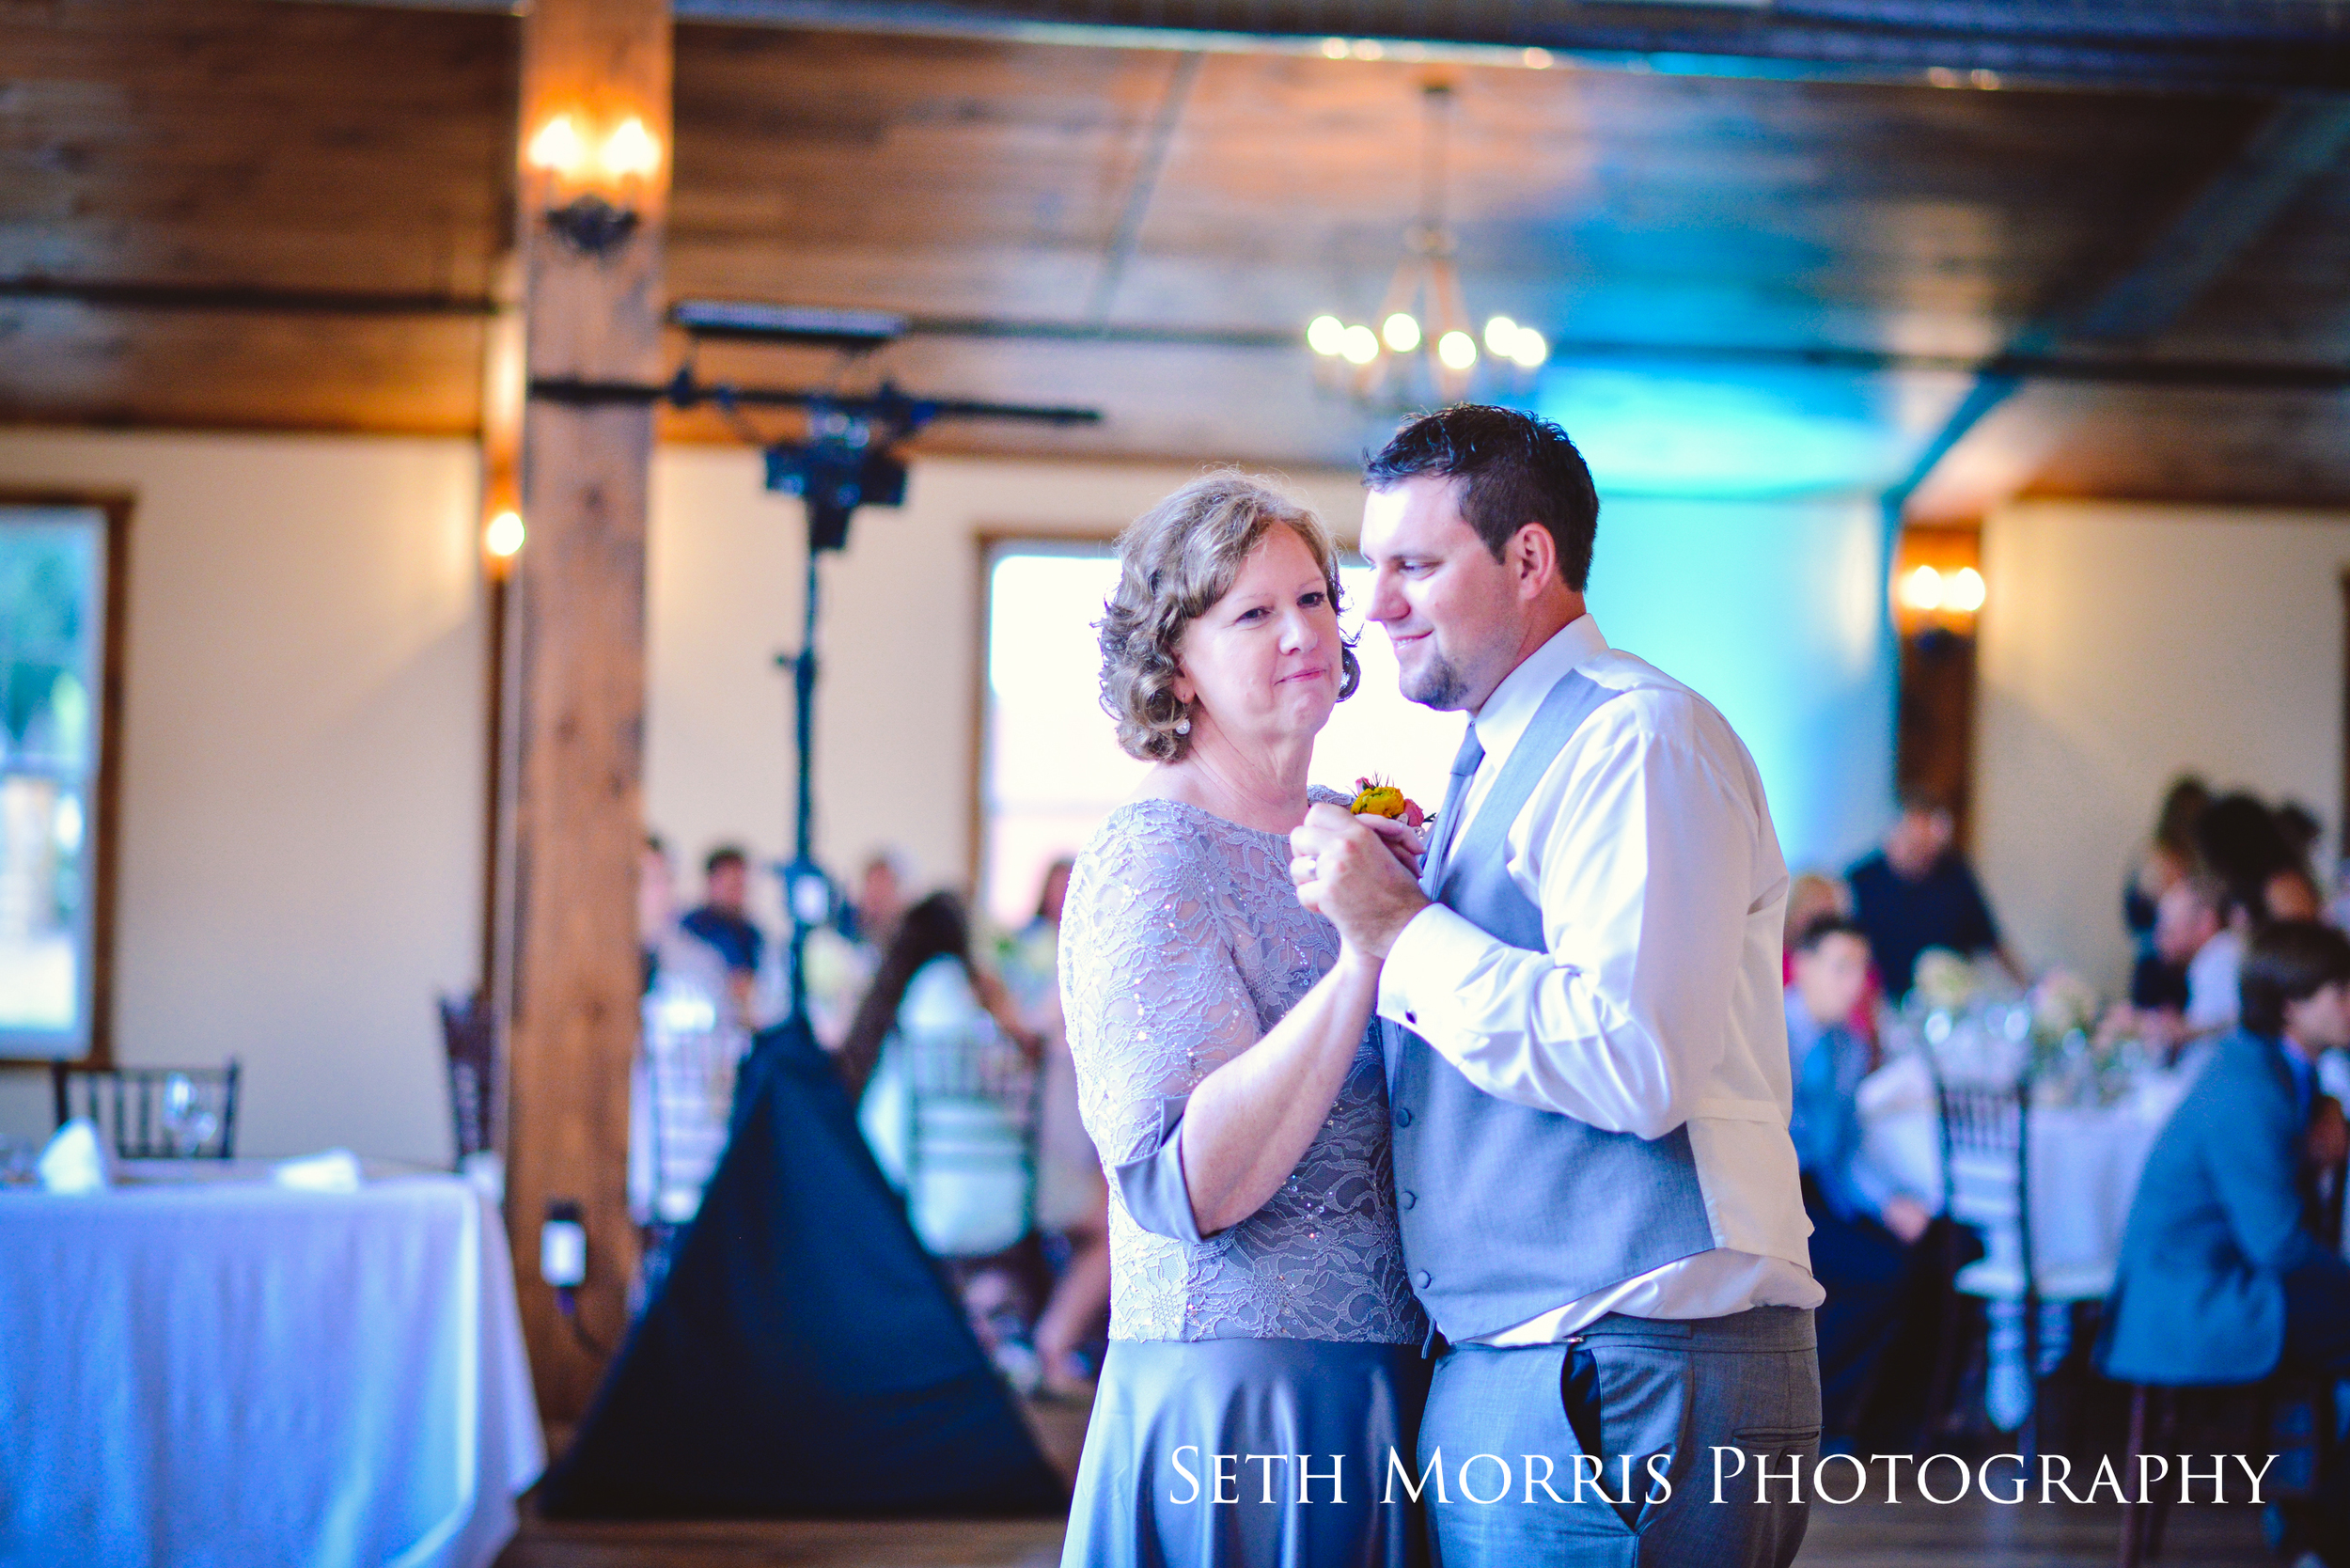 hornbaker-barn-wedding-photo-princeton-photographer-75.jpg